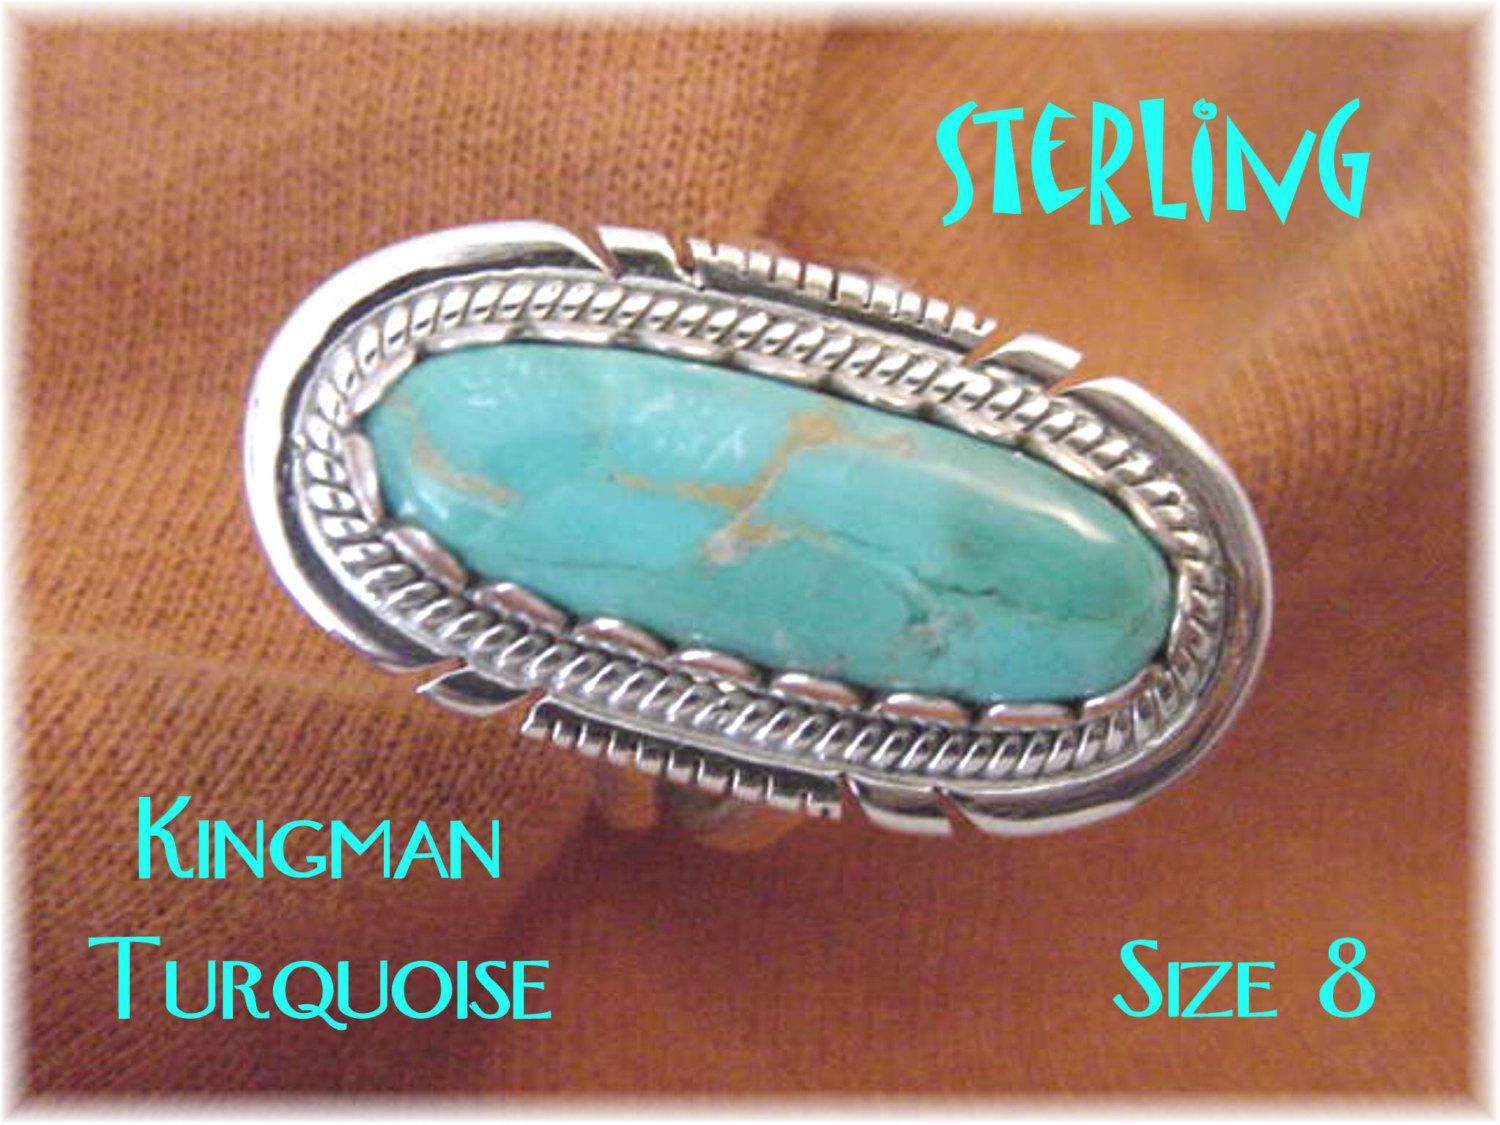 Kingman Turquoise - Sterling Silver Native American Indian Ring - Size 8 - Arizona Estate - New Old Stock NOS - Gift Box - FREE SHIPPING